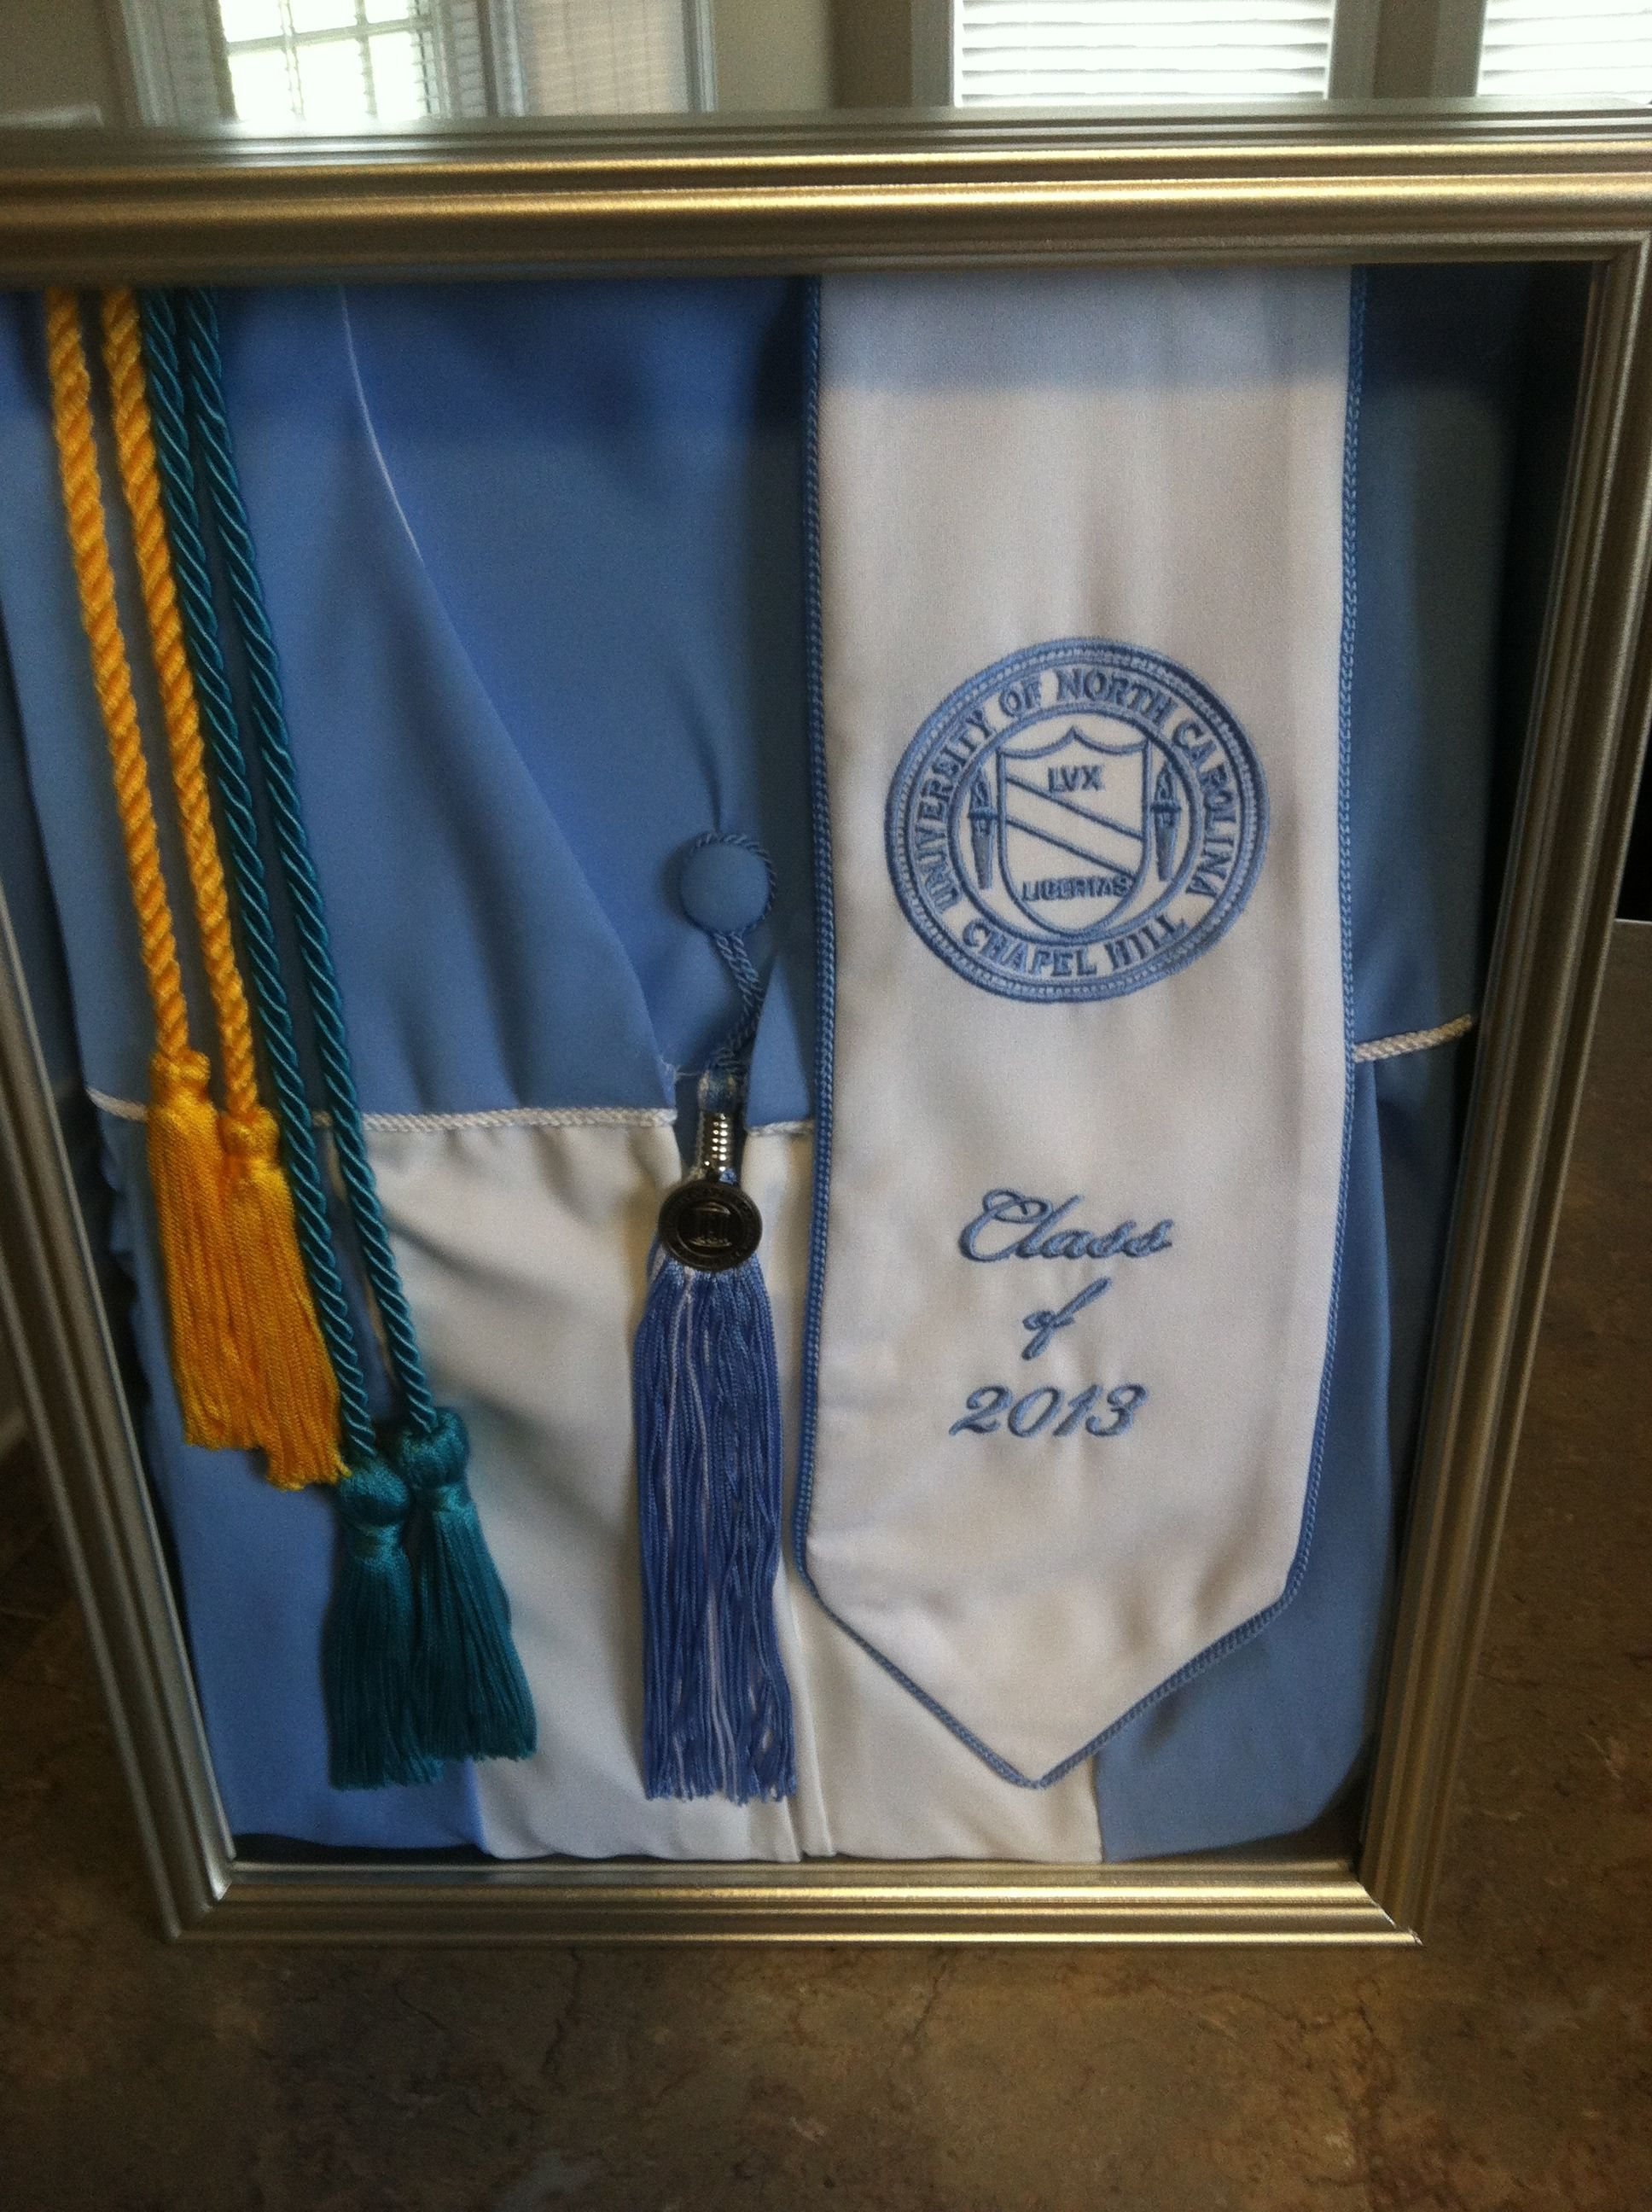 Rather than hanging my cap and gown in the closet to never been seen ...